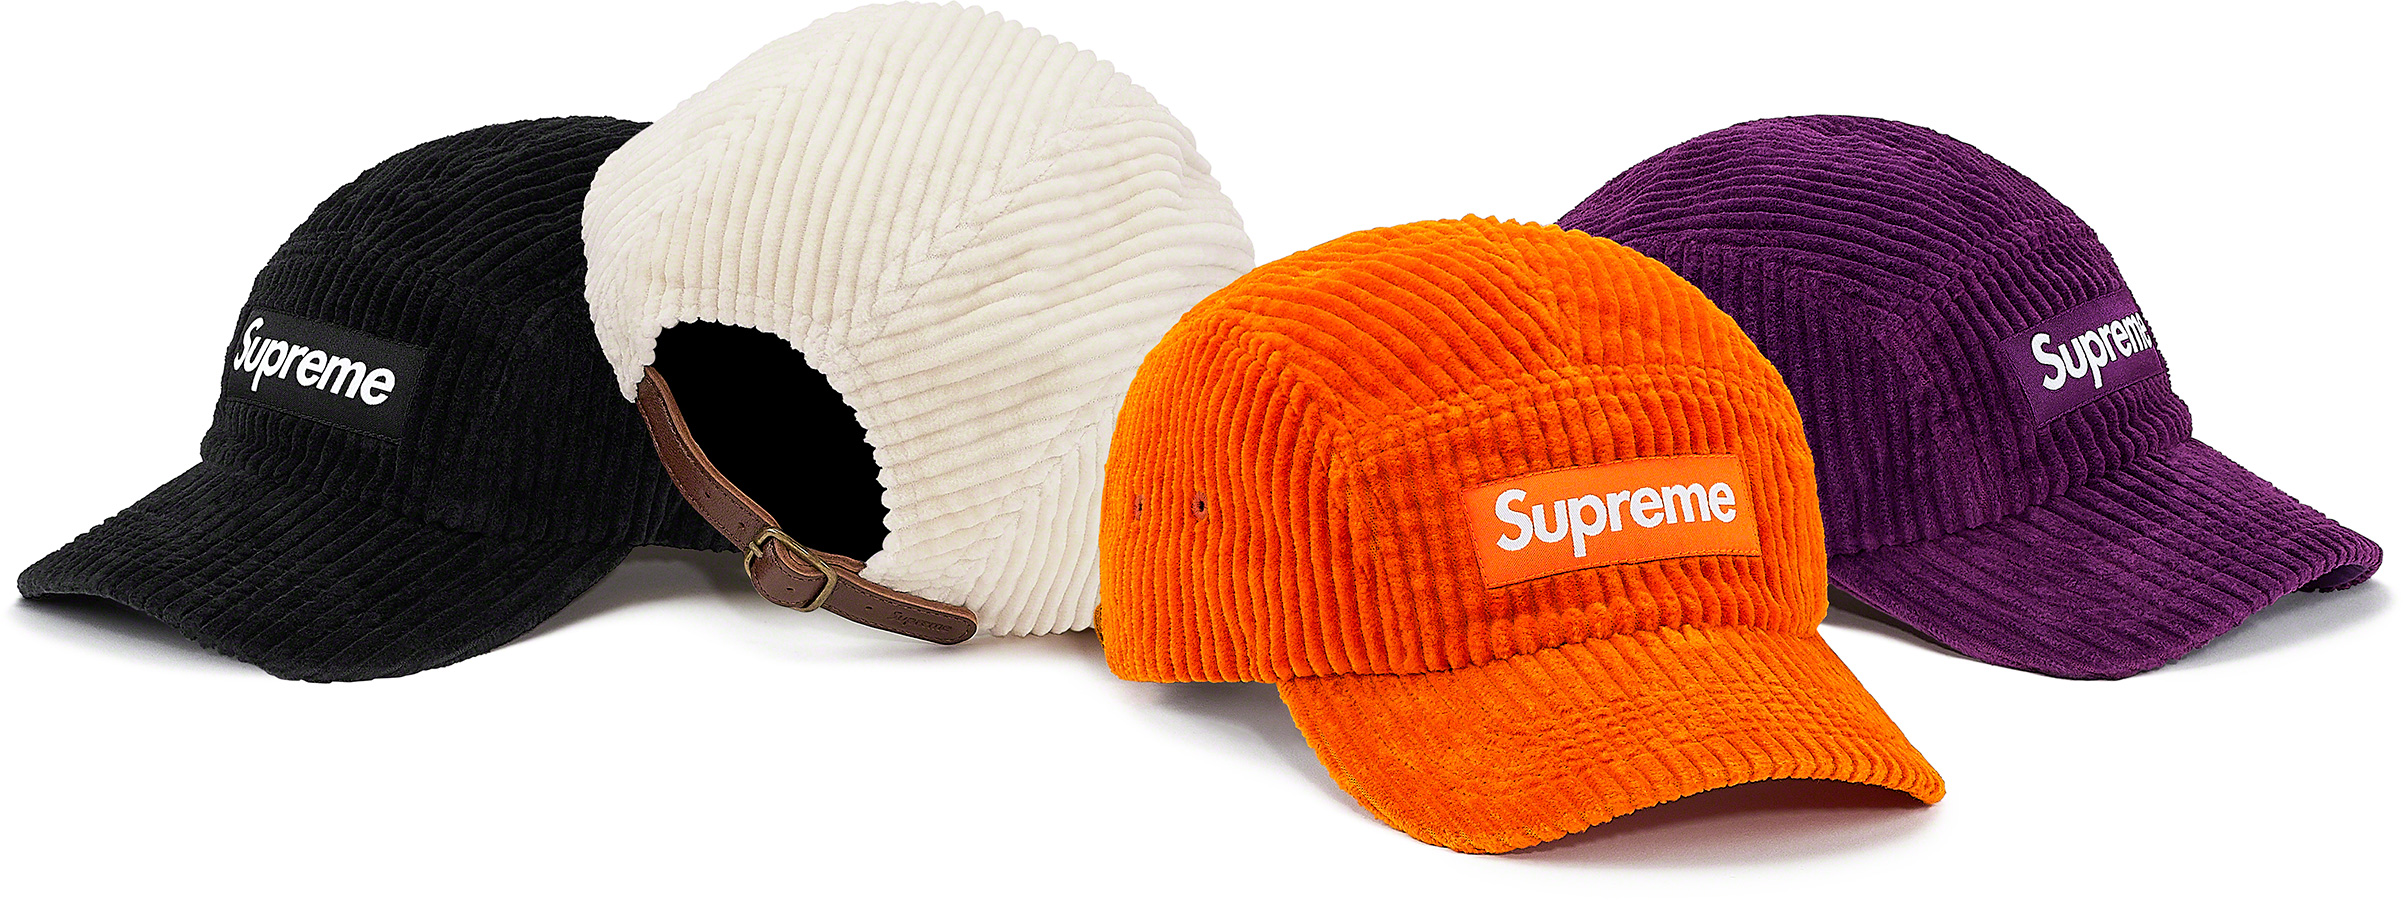 supreme-20ss-spring-summer-wide-wale-corduroy-camp-cap